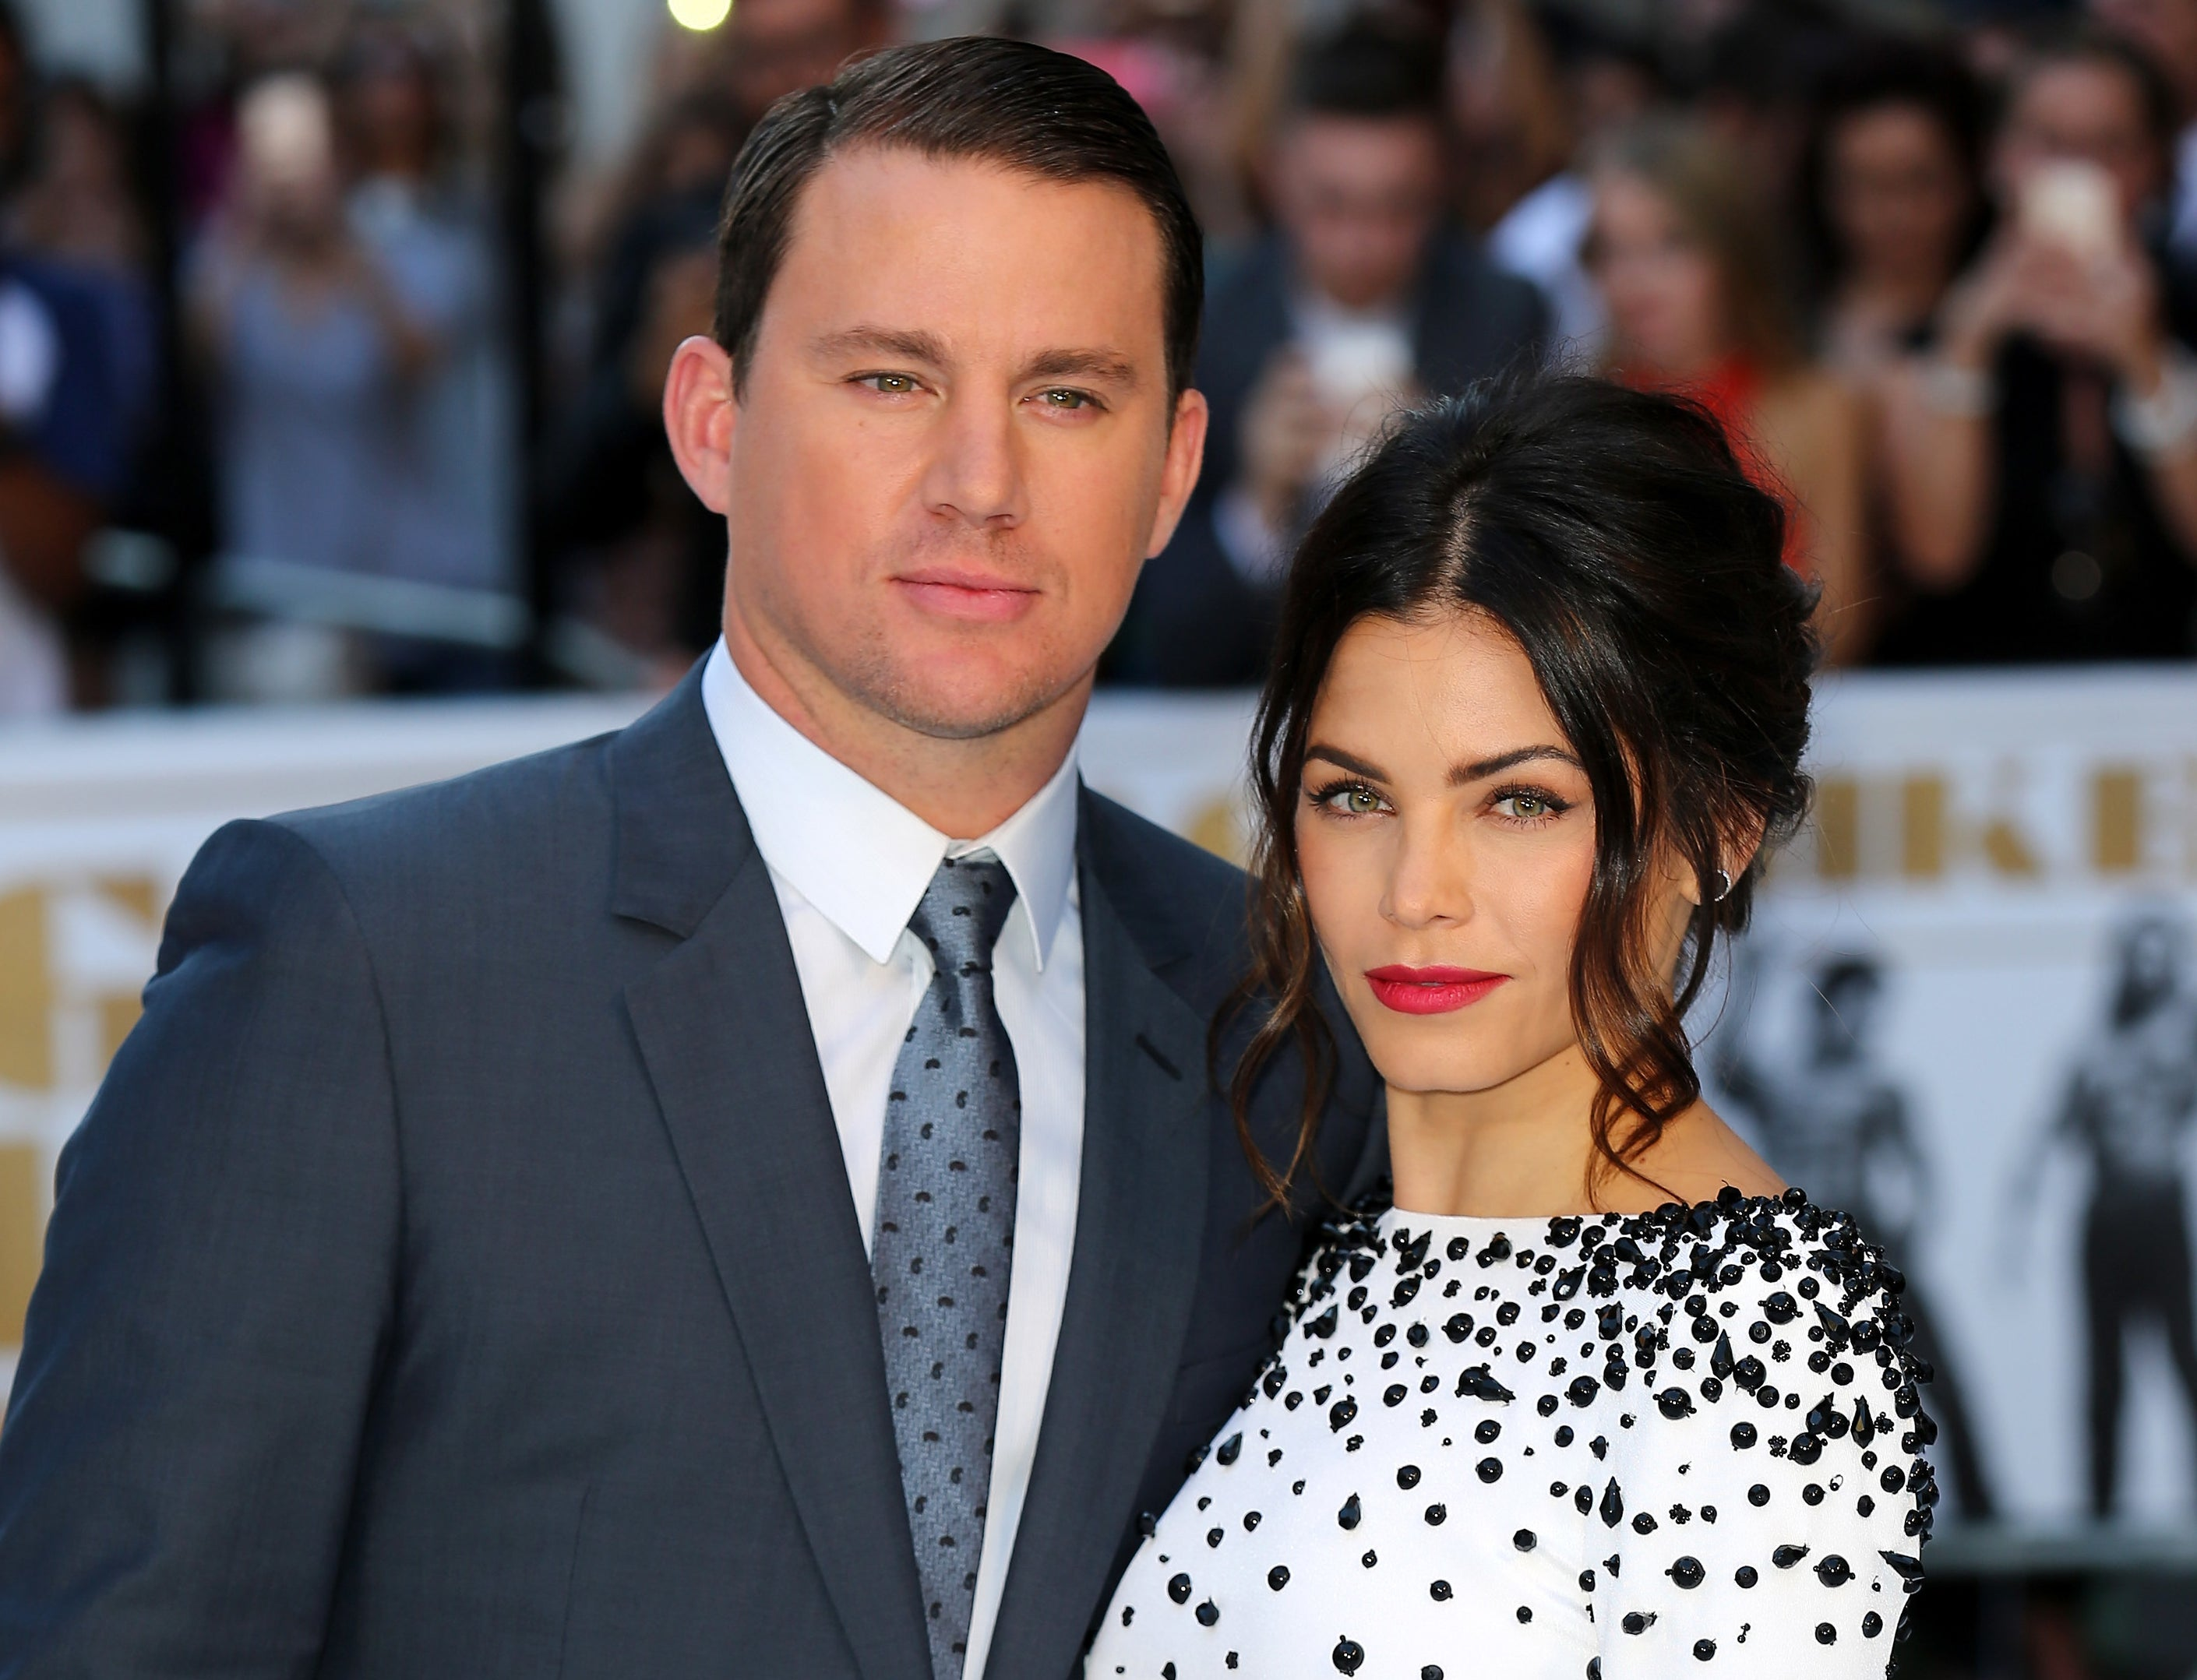 Jenna and Channing attend an event together before their split